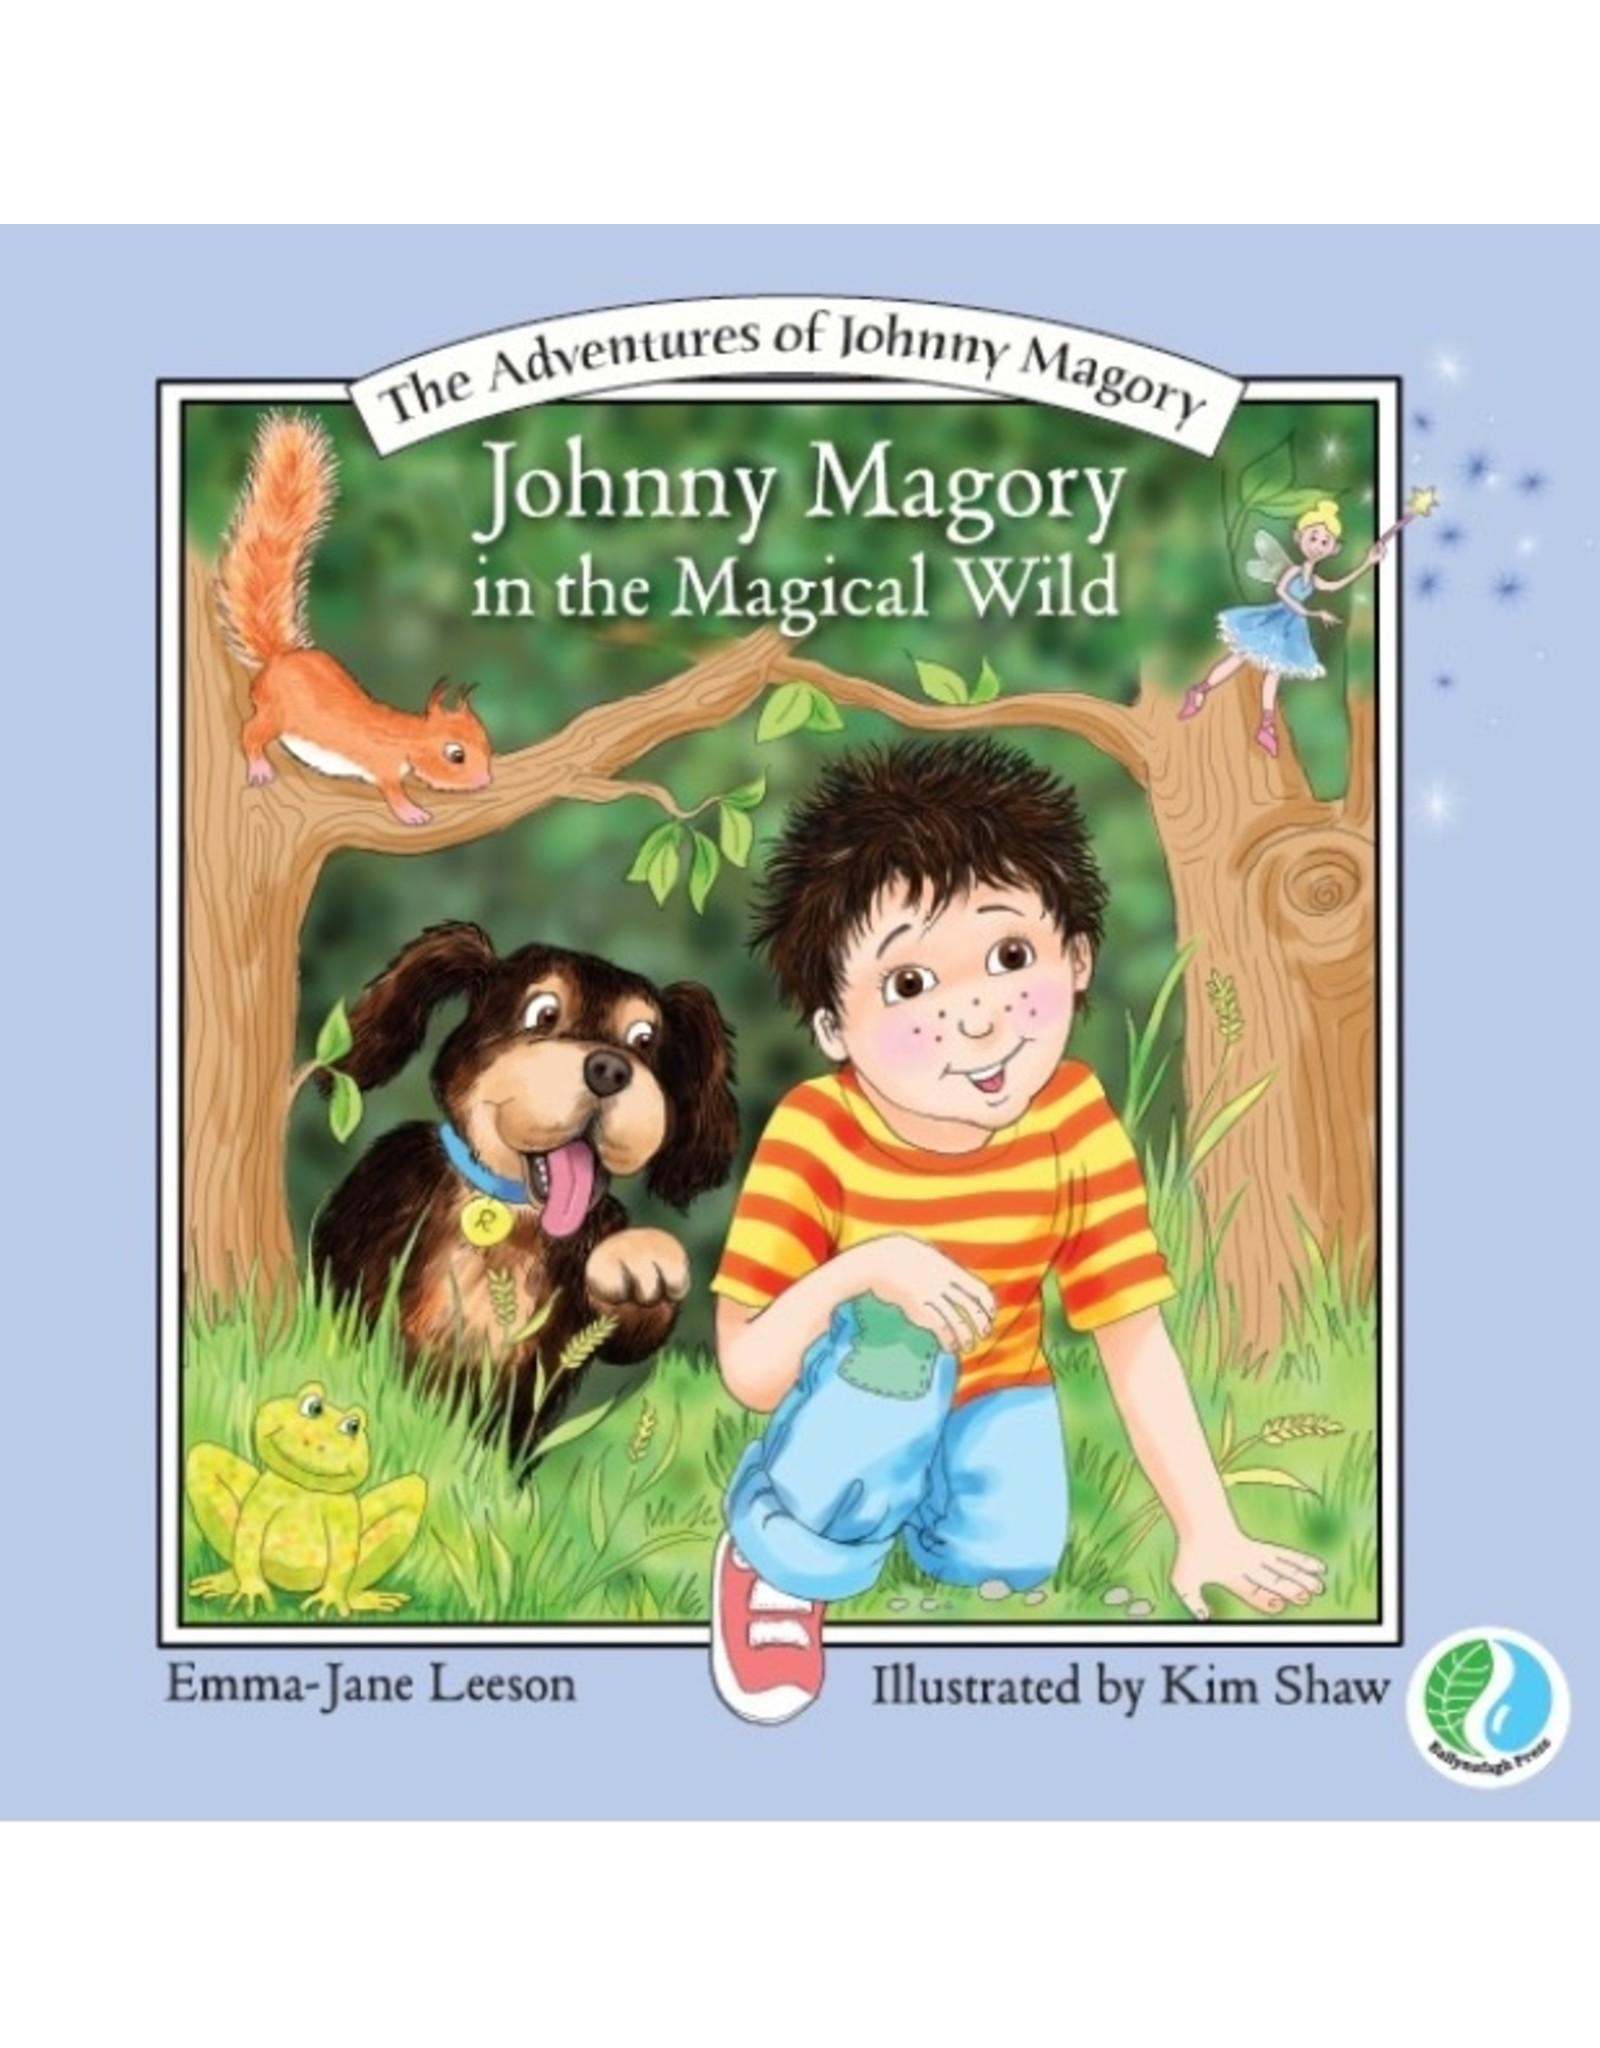 Johnny Magory The Adventures of Johnny Magory Books